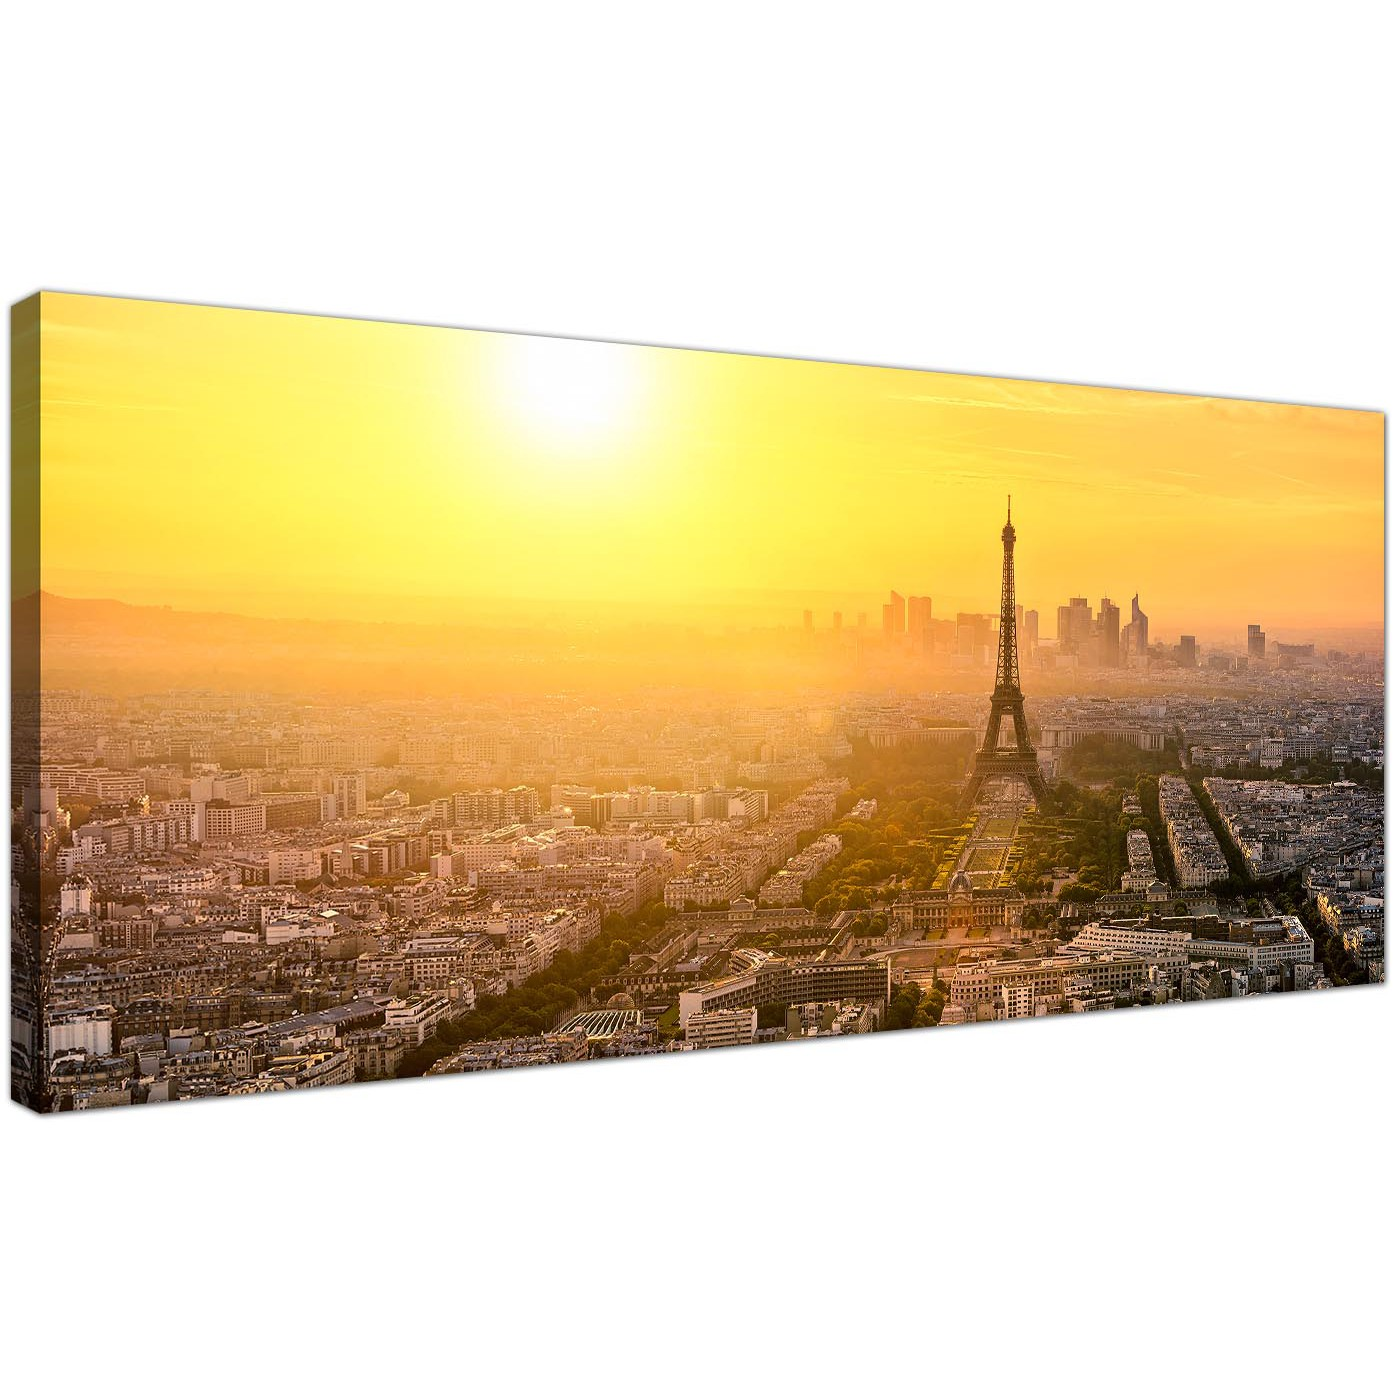 Cheap Canvas Prints of the Paris Skyline for your Living Room